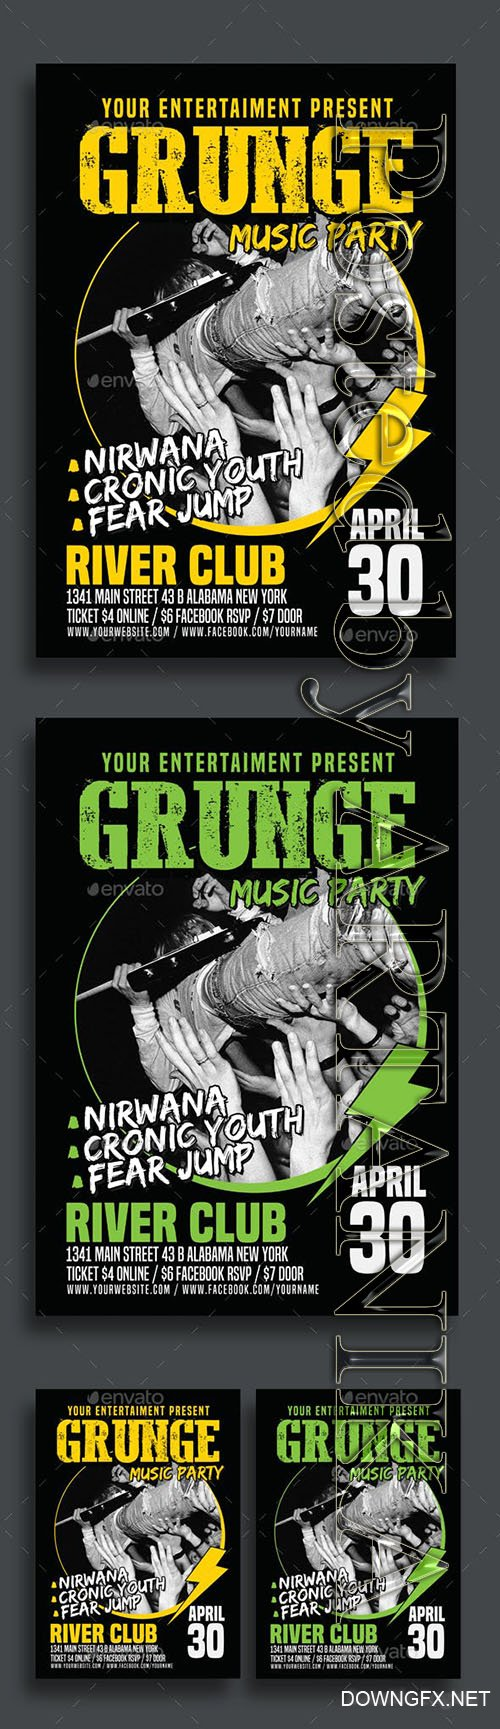 Graphicriver - Grunge Music Party Poster Flyer 15796615